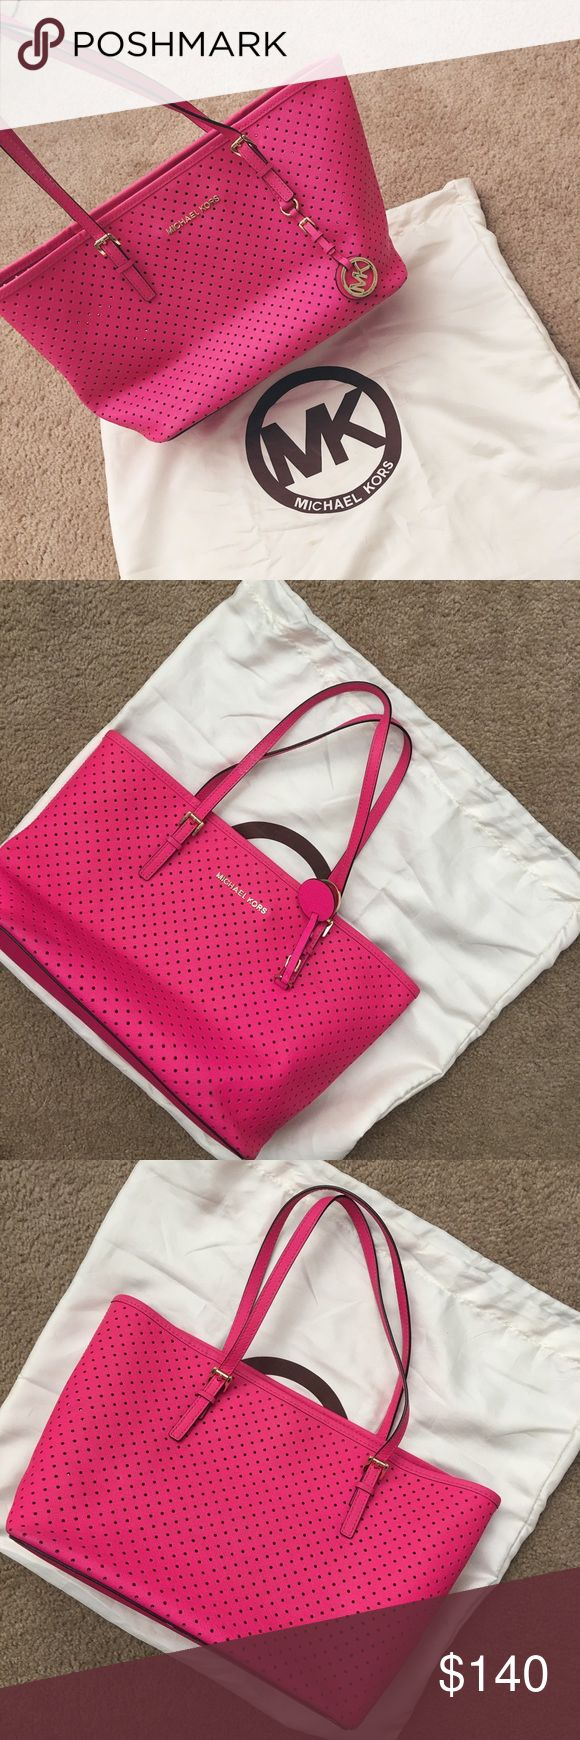 Authentic Michael Kors Perforated Small Tote Traded this on posh and I love it! But it doesn't fit all my stuff and to small for me unfortunately.. Color magenta , size small, does have a few spots on bottom of the bag and some pen marks on the pocket in the inside. Any questions just let me know! :) Michael Kors Bags Shoulder Bags